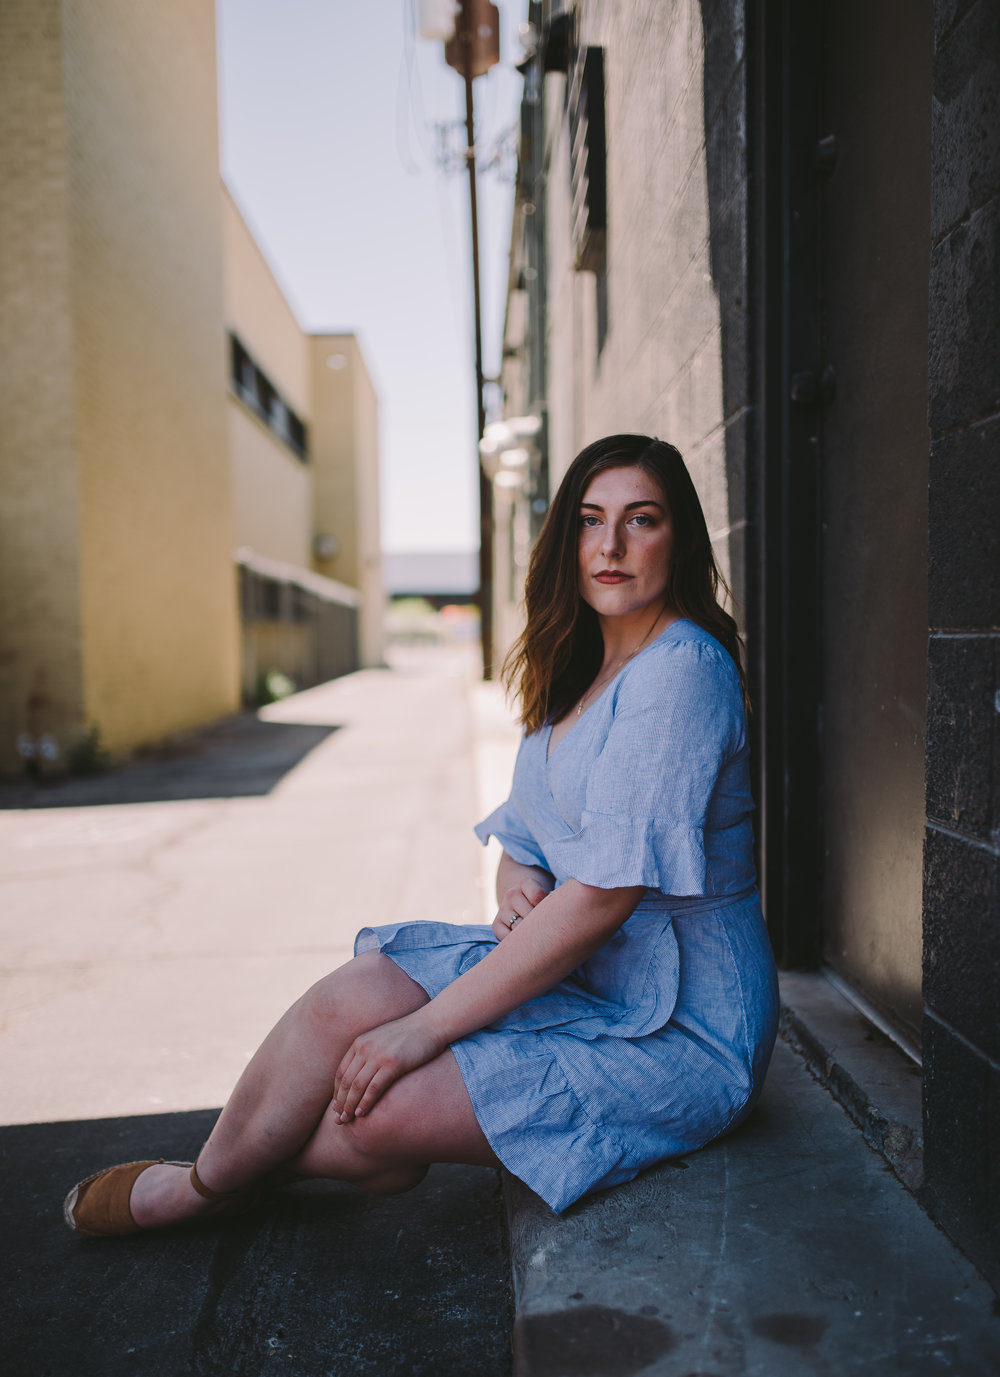 EmilyKidd_PhoenixArizona_June2018_Senior Photography In Phoenix Arizona_ArizonaSeniorPhotographer_SamanthaRosePhotography_BLOG_008.JPG